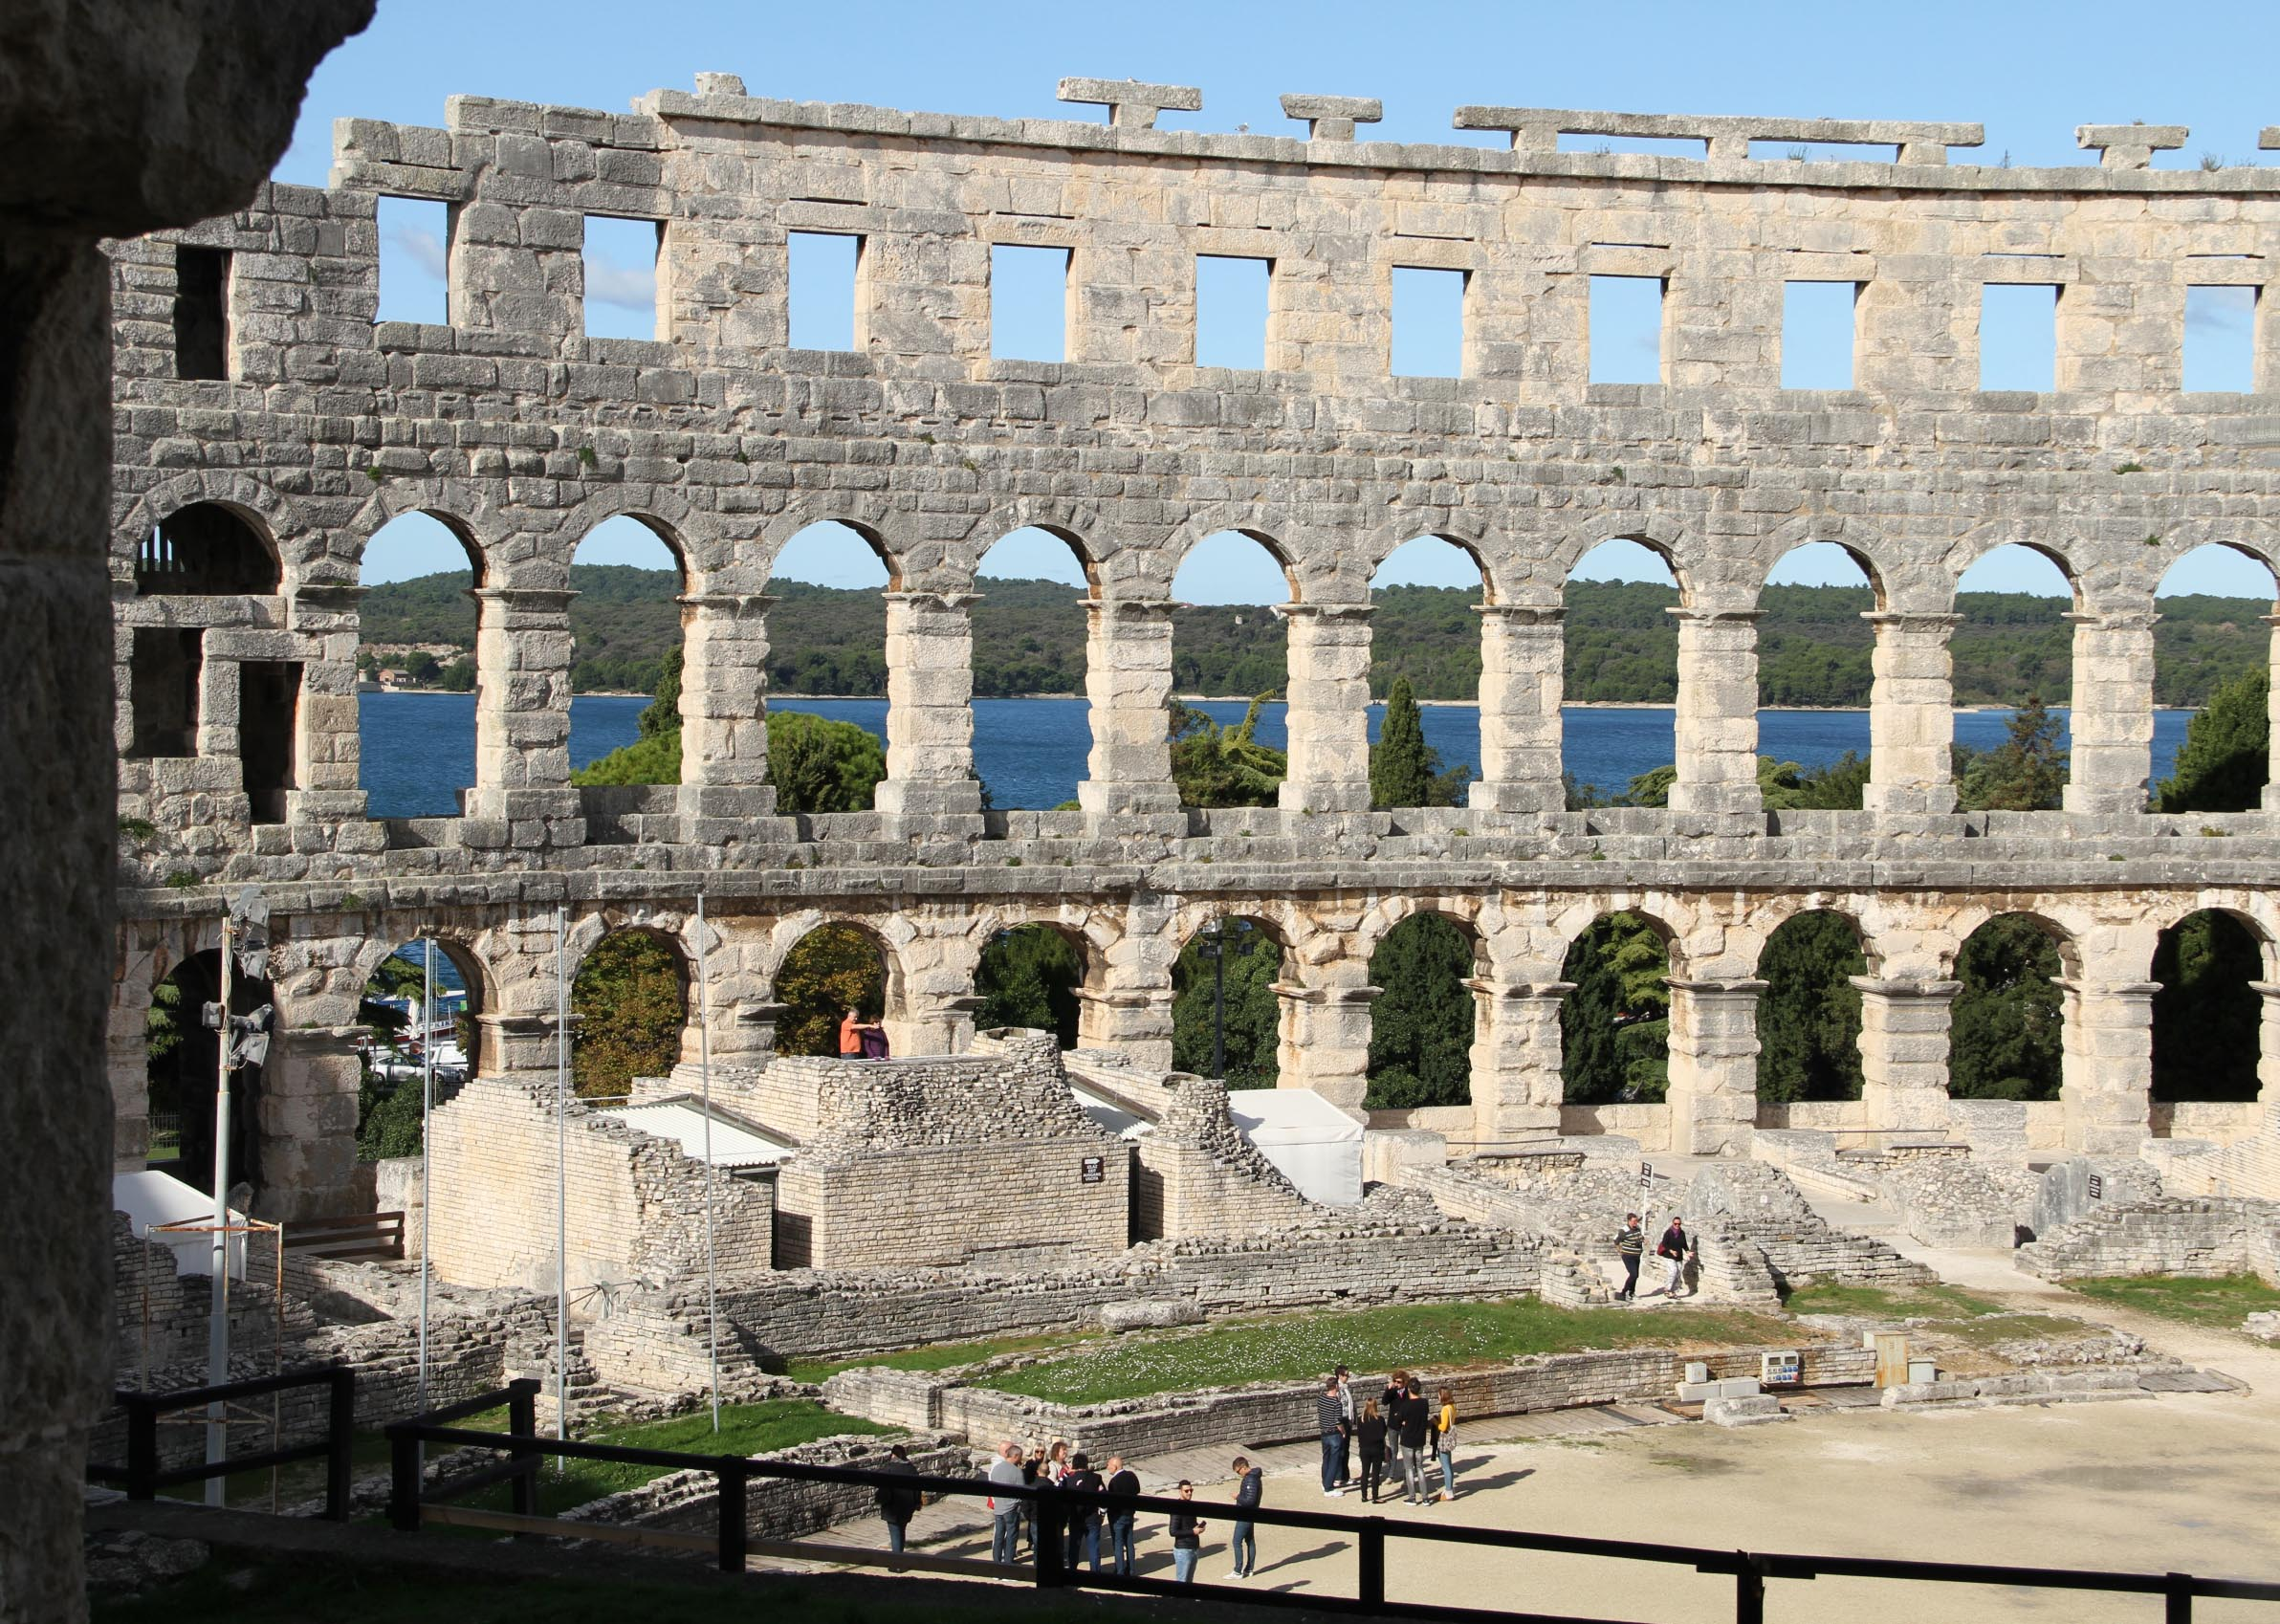 Roman Amphitheater of Pula